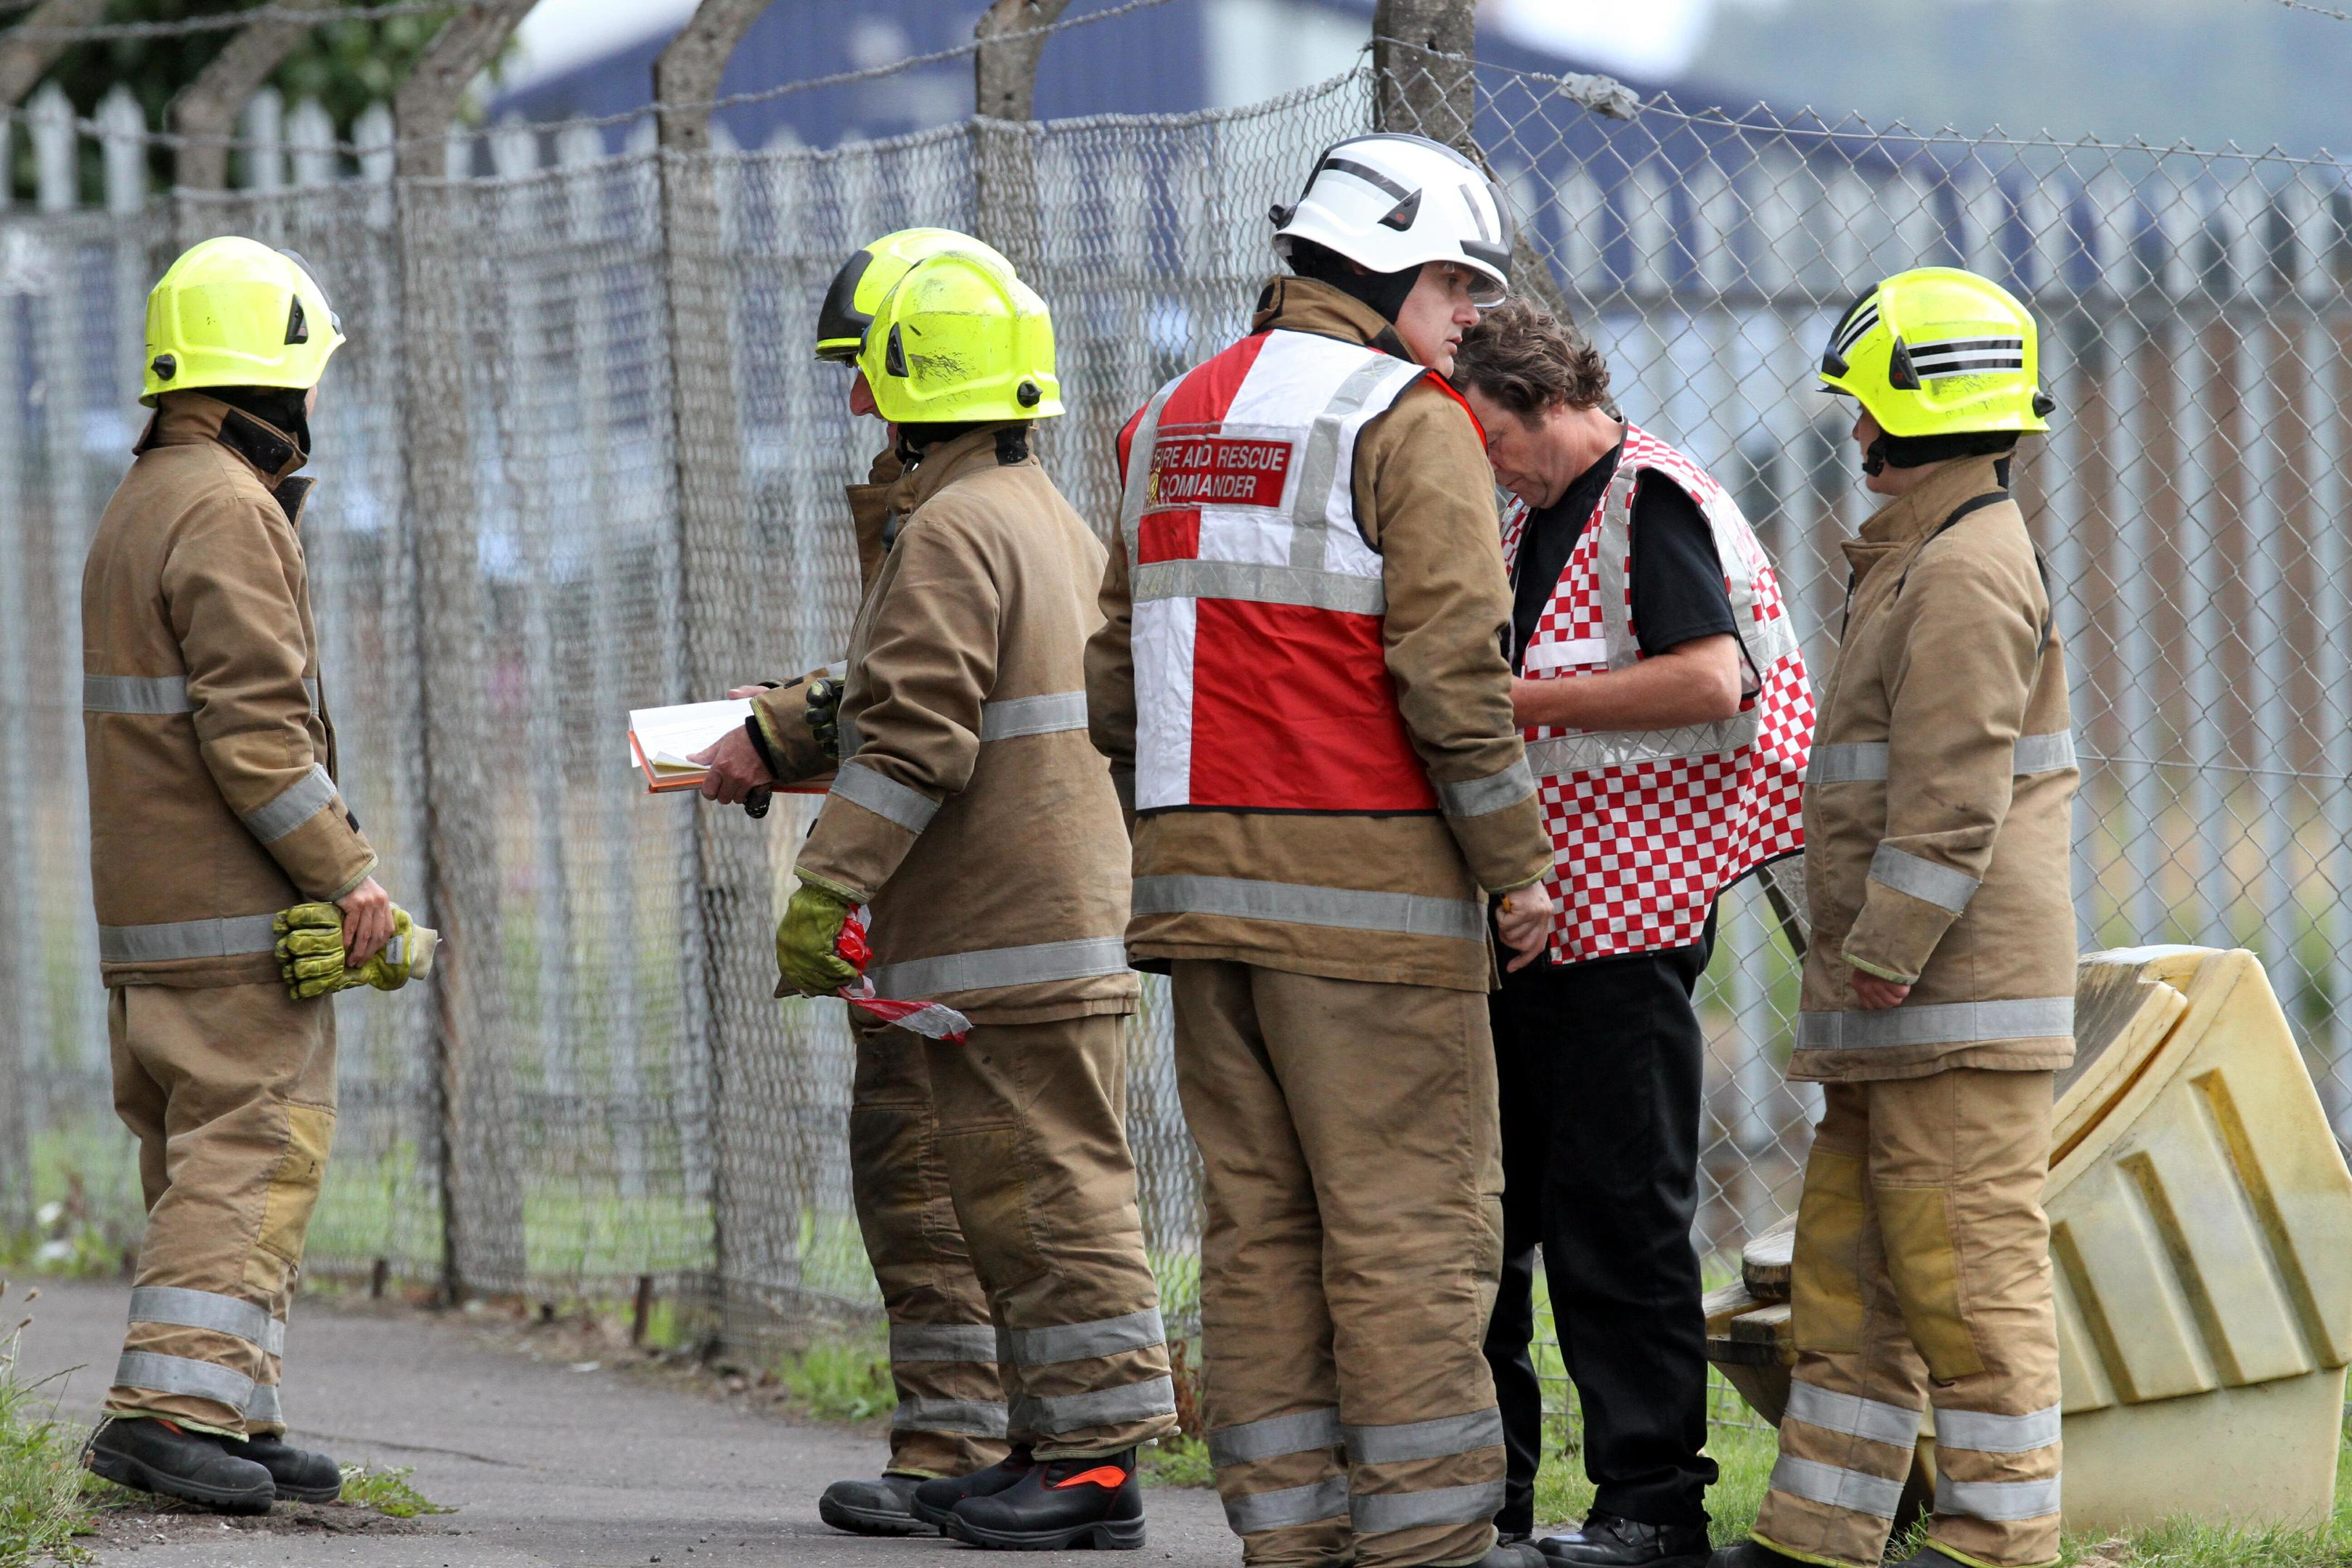 Police and fire brigade attend incident at Dundee Cold Stores on Whittle Place.